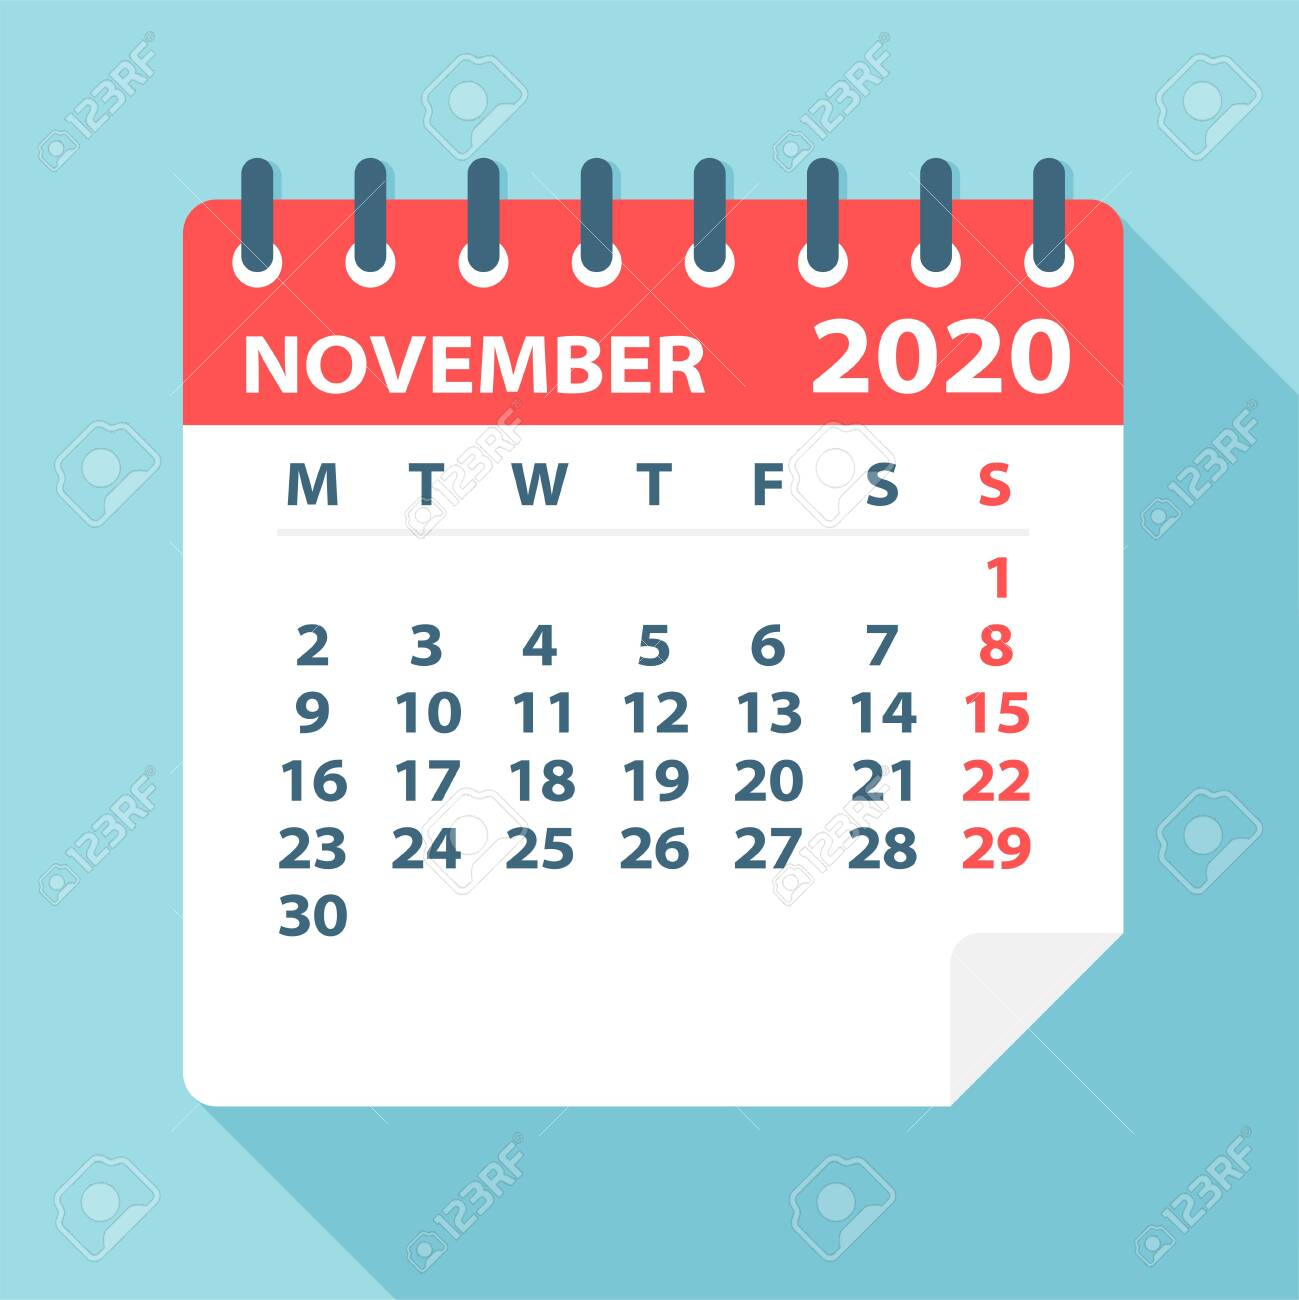 November 2020 Calendar Leaf  Illustration. Vector Graphic Page throughout November 2020 Clipart